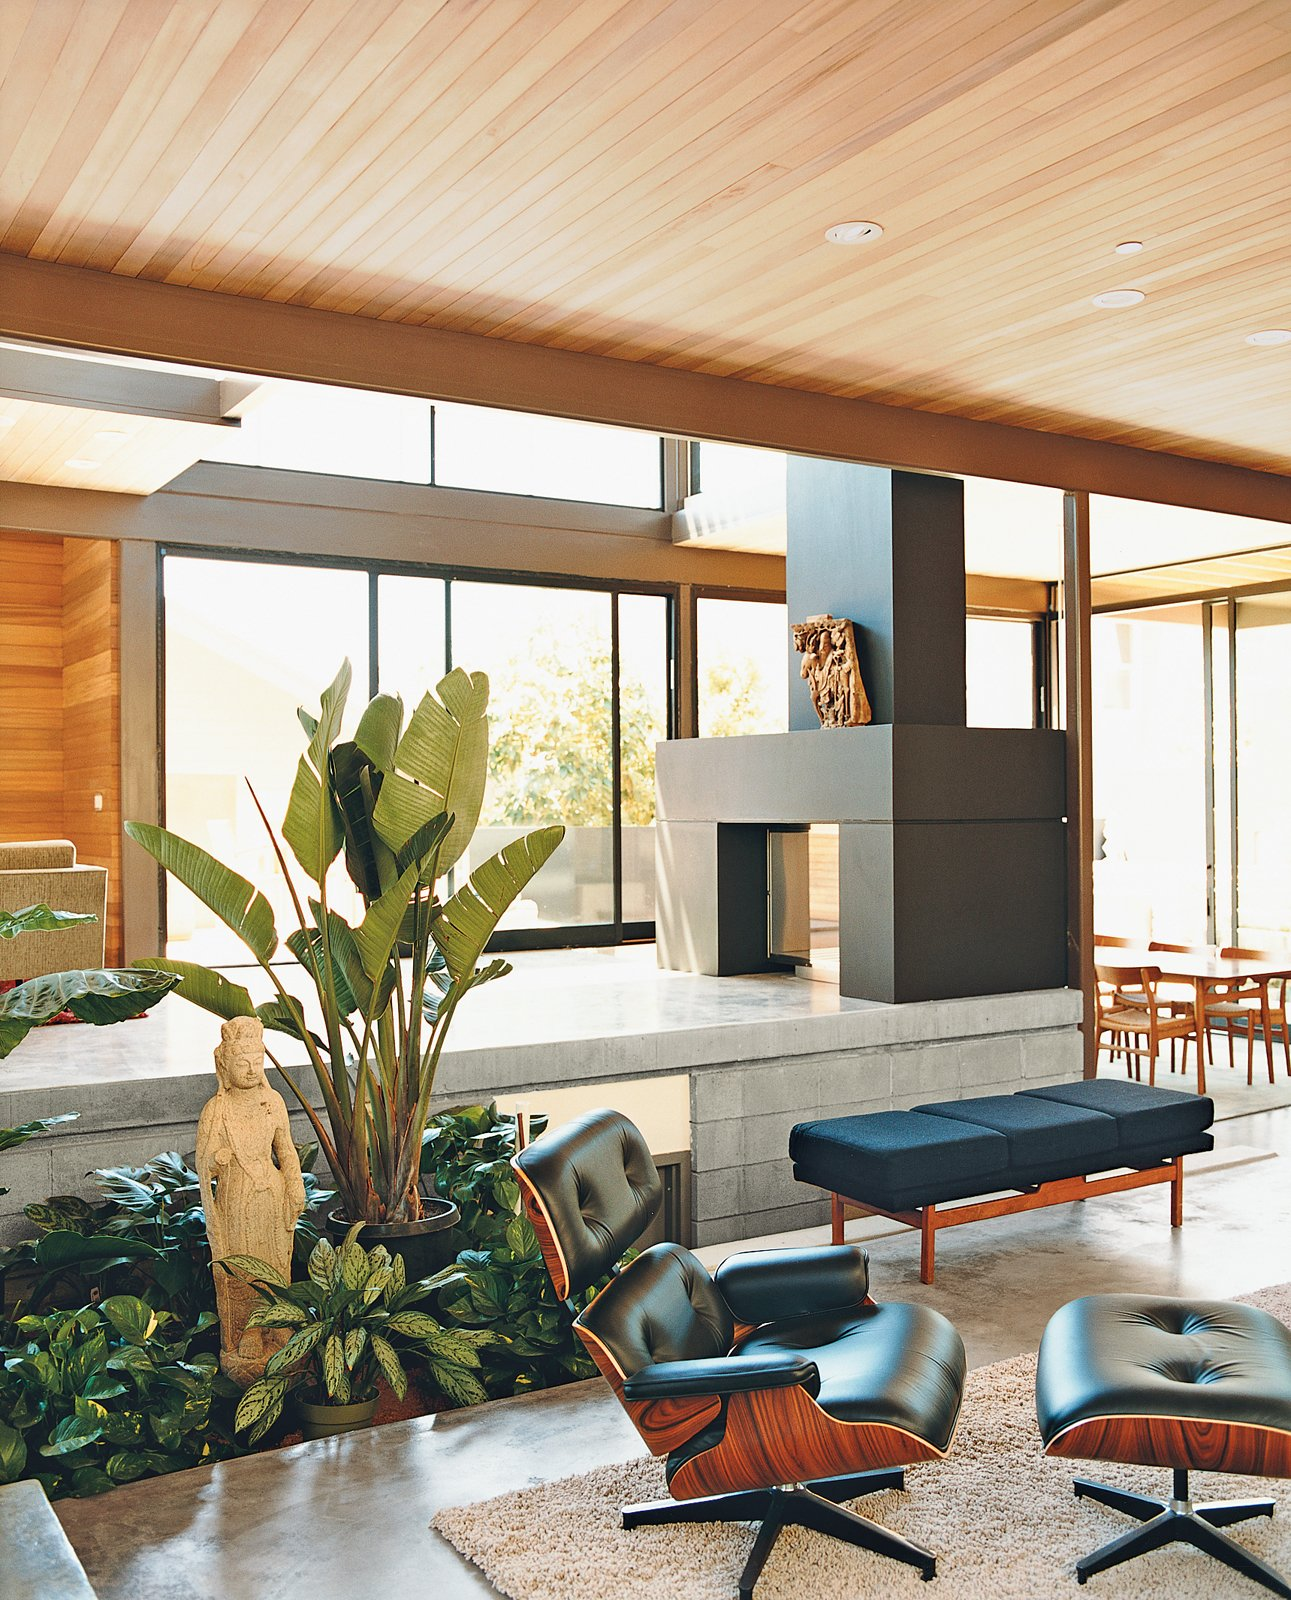 The lower living space on the ground floor of a Los Angeles, California, home features an EcoSmart fireplace fueled by denatured alcohol. Read the full article here. Tagged: Living, Recliner, Concrete, and Two-Sided.  Best Living Concrete Recliner Photos from LEEDing the Way